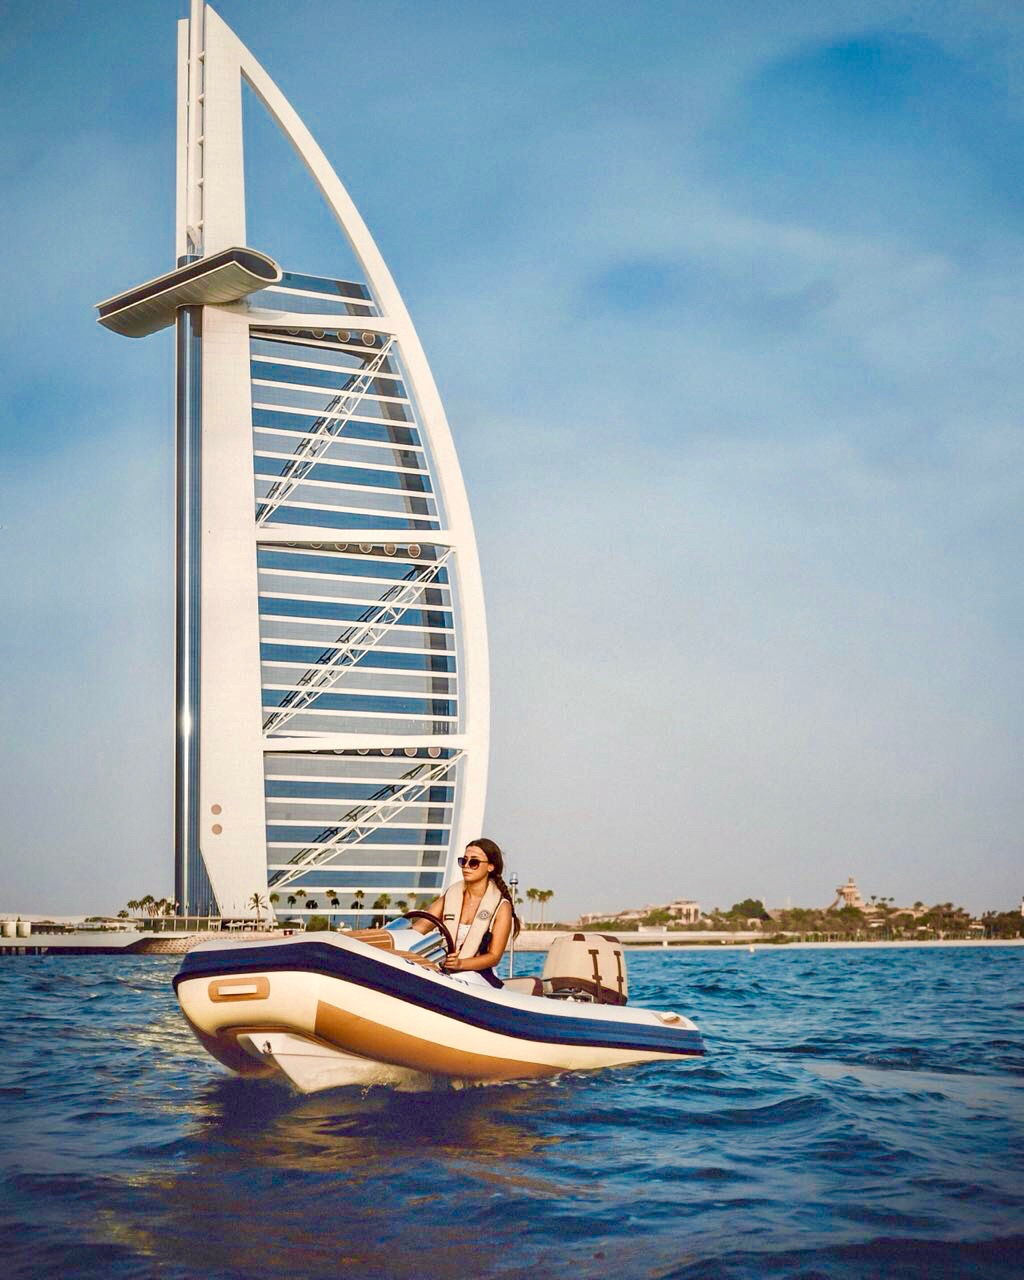 hero_dubai_selfdriveboat_lustforthesublime